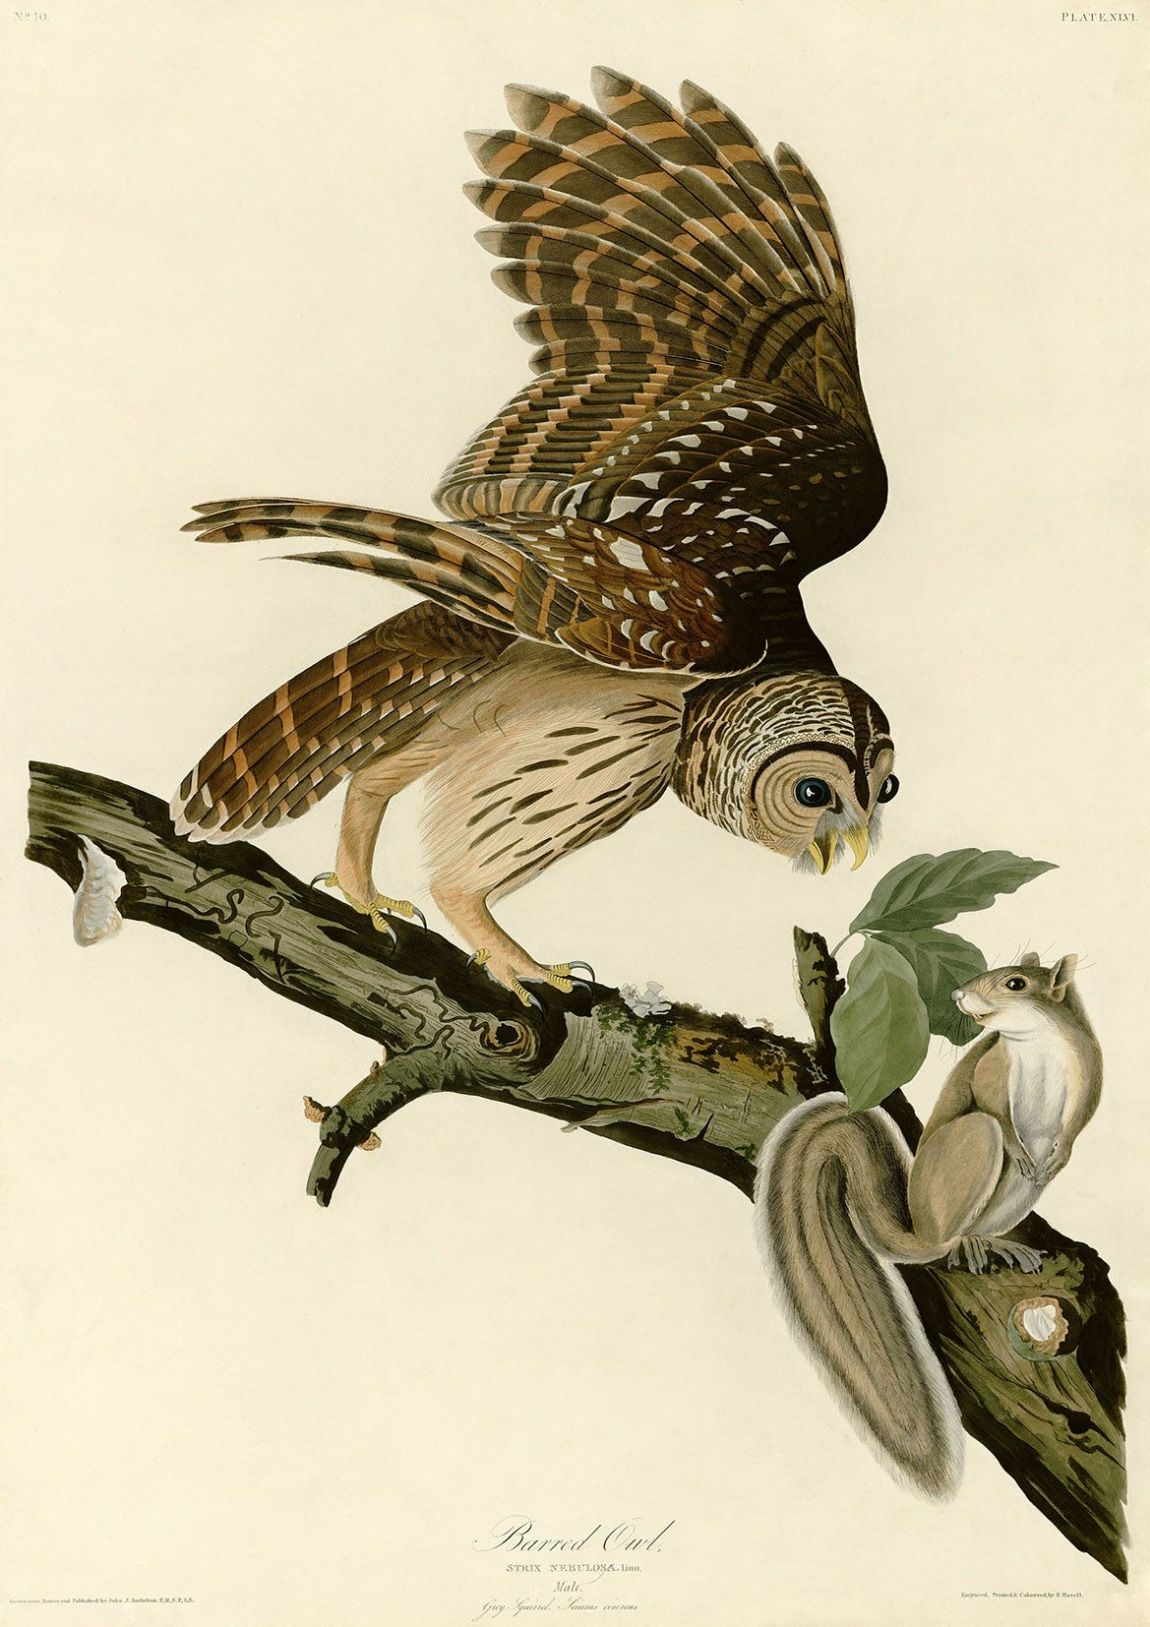 Audubon, John James: Barred Owl and Grey Squirrel. Ornithology Fine Art Print/Poster. Sizes: A4/A3/A2/A1 (001010)